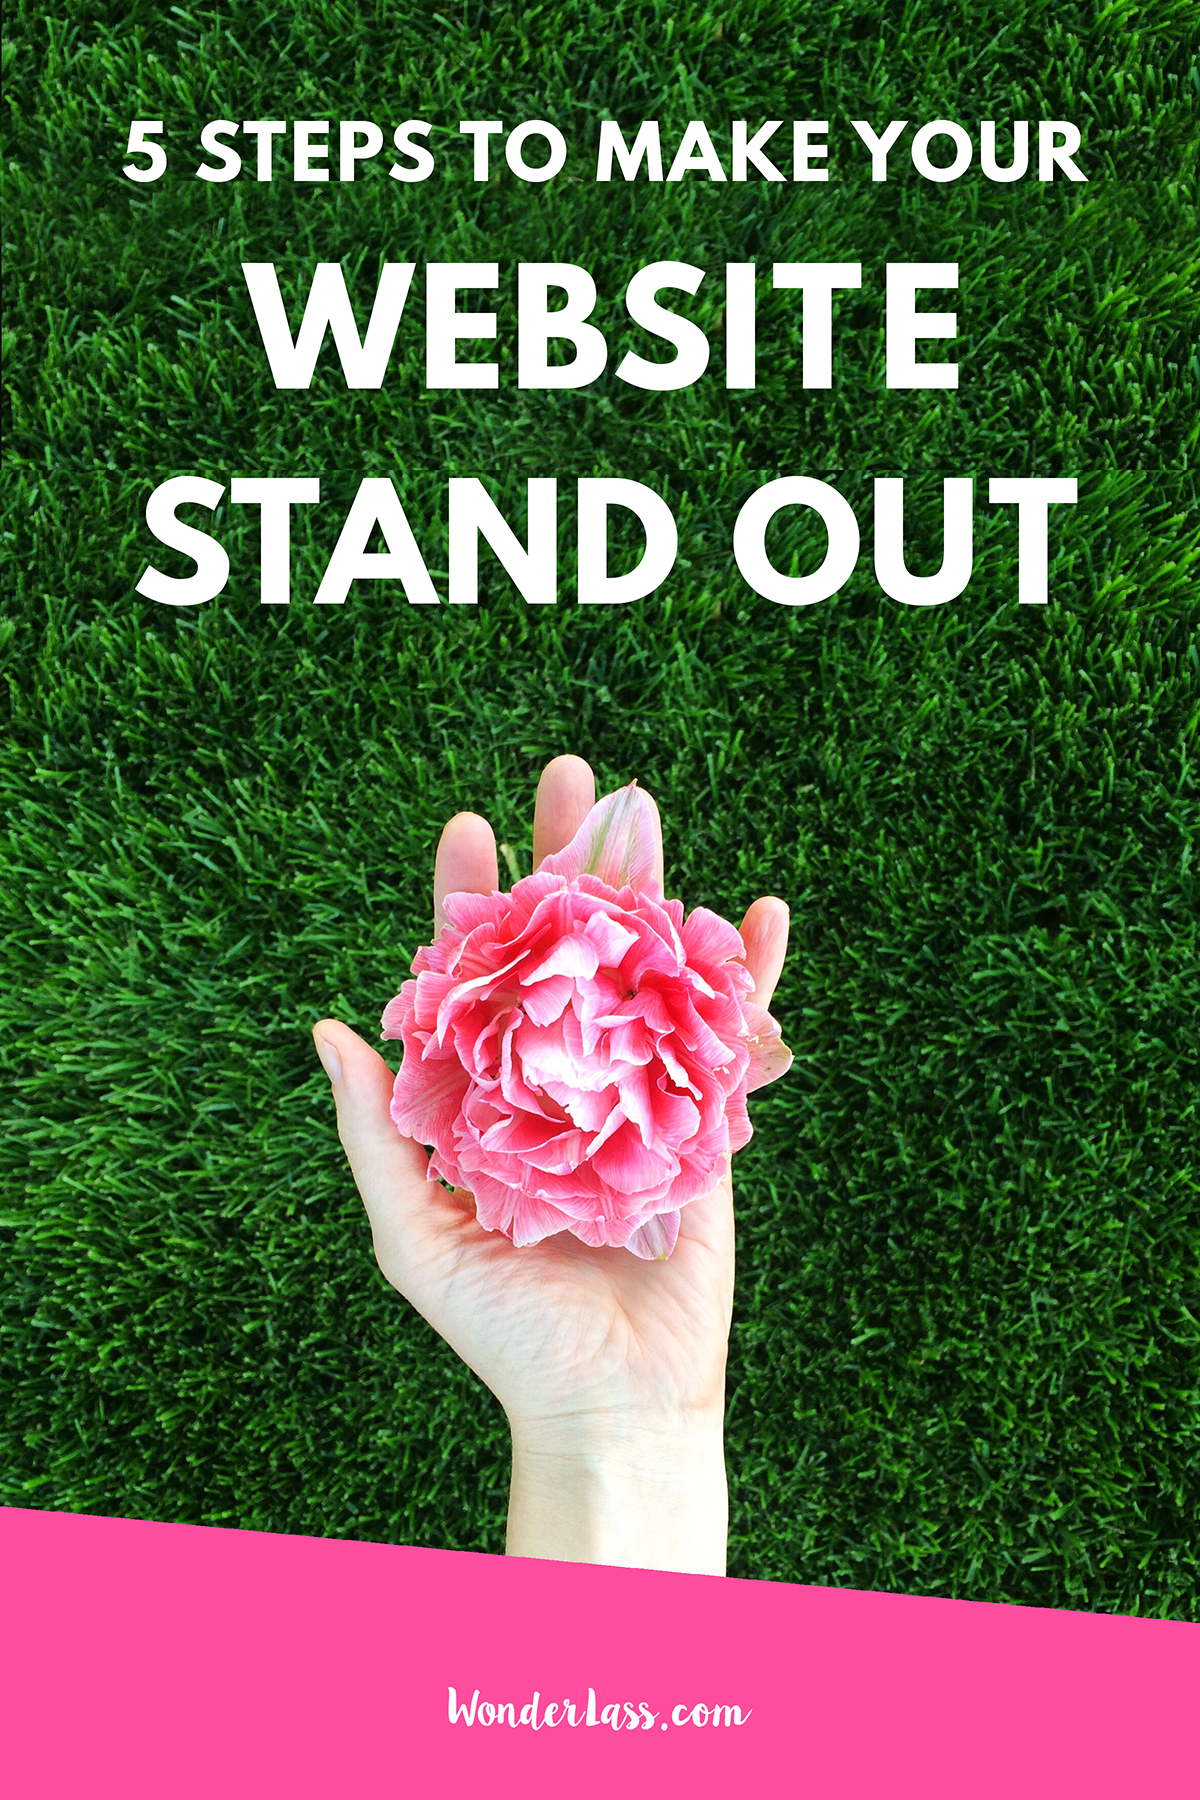 5 Steps to Make Your Website Stand Out   Learn actionable ways to make your website stand out online so that you can grow your following   Wonderlass